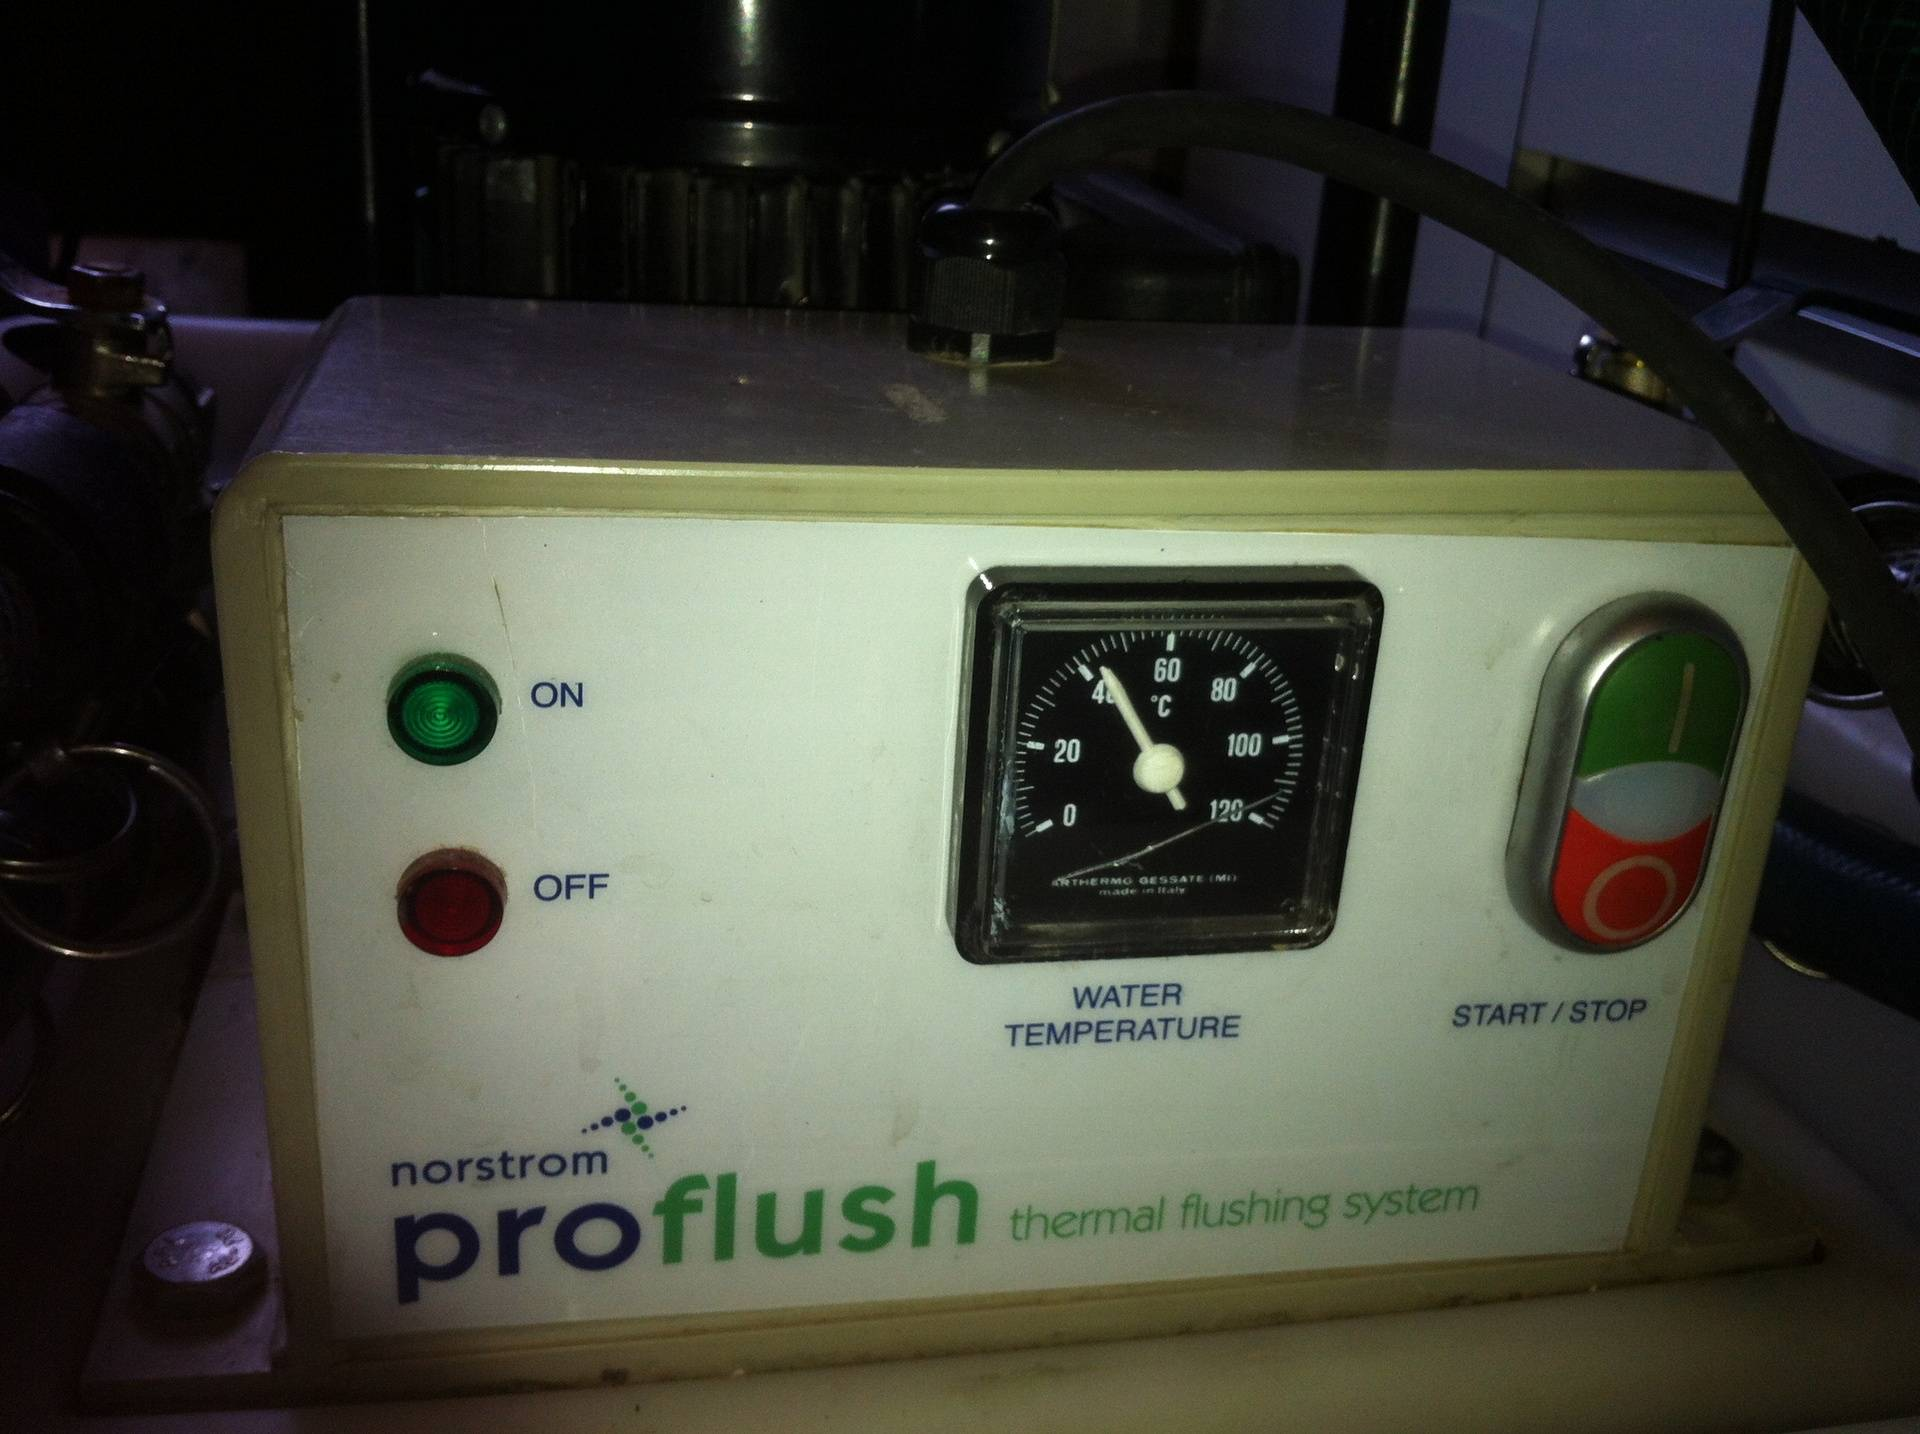 The thermal heating unit on our 'Norstrom' powerflush unit.